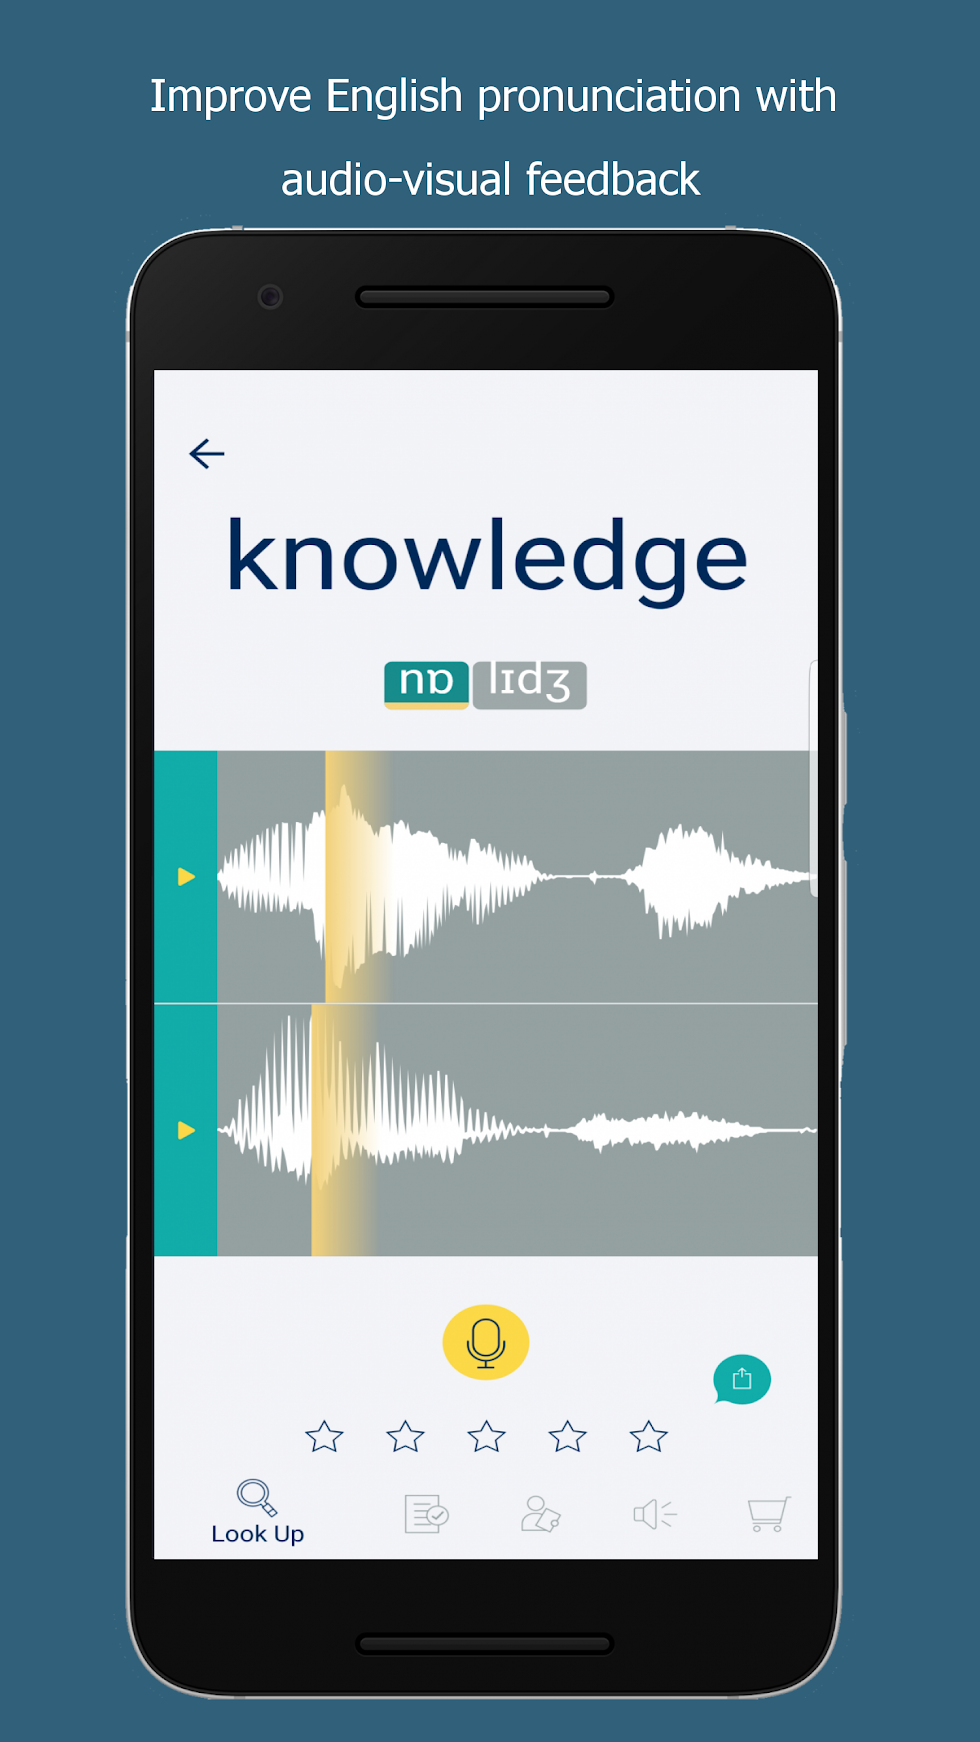 Audio-visual feedback for word pronunciation